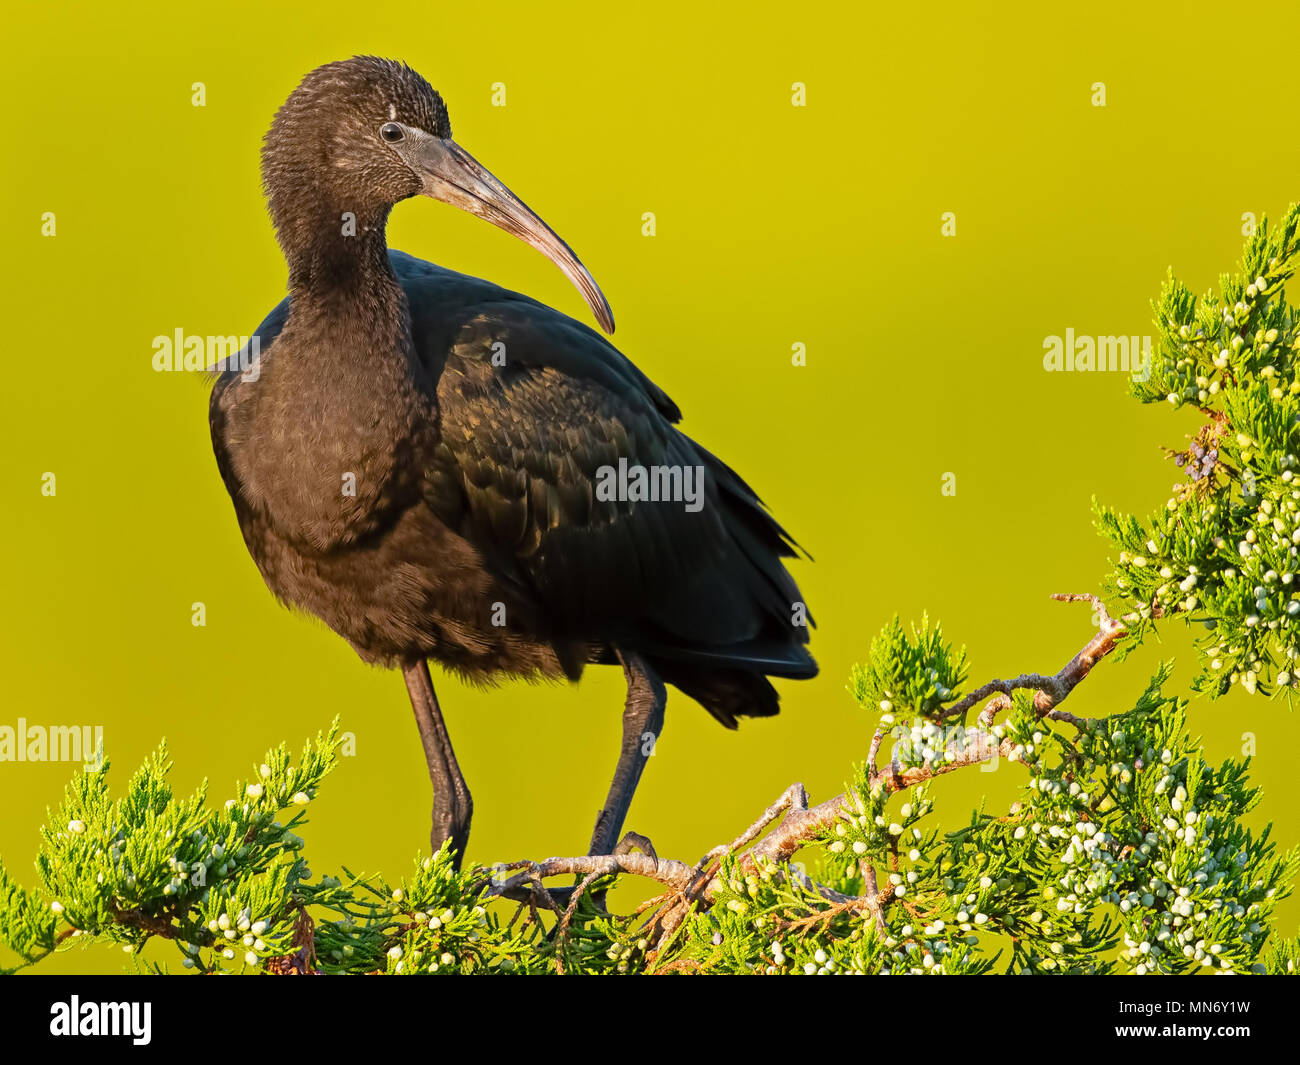 Glossy Ibis in the Trees - Stock Image